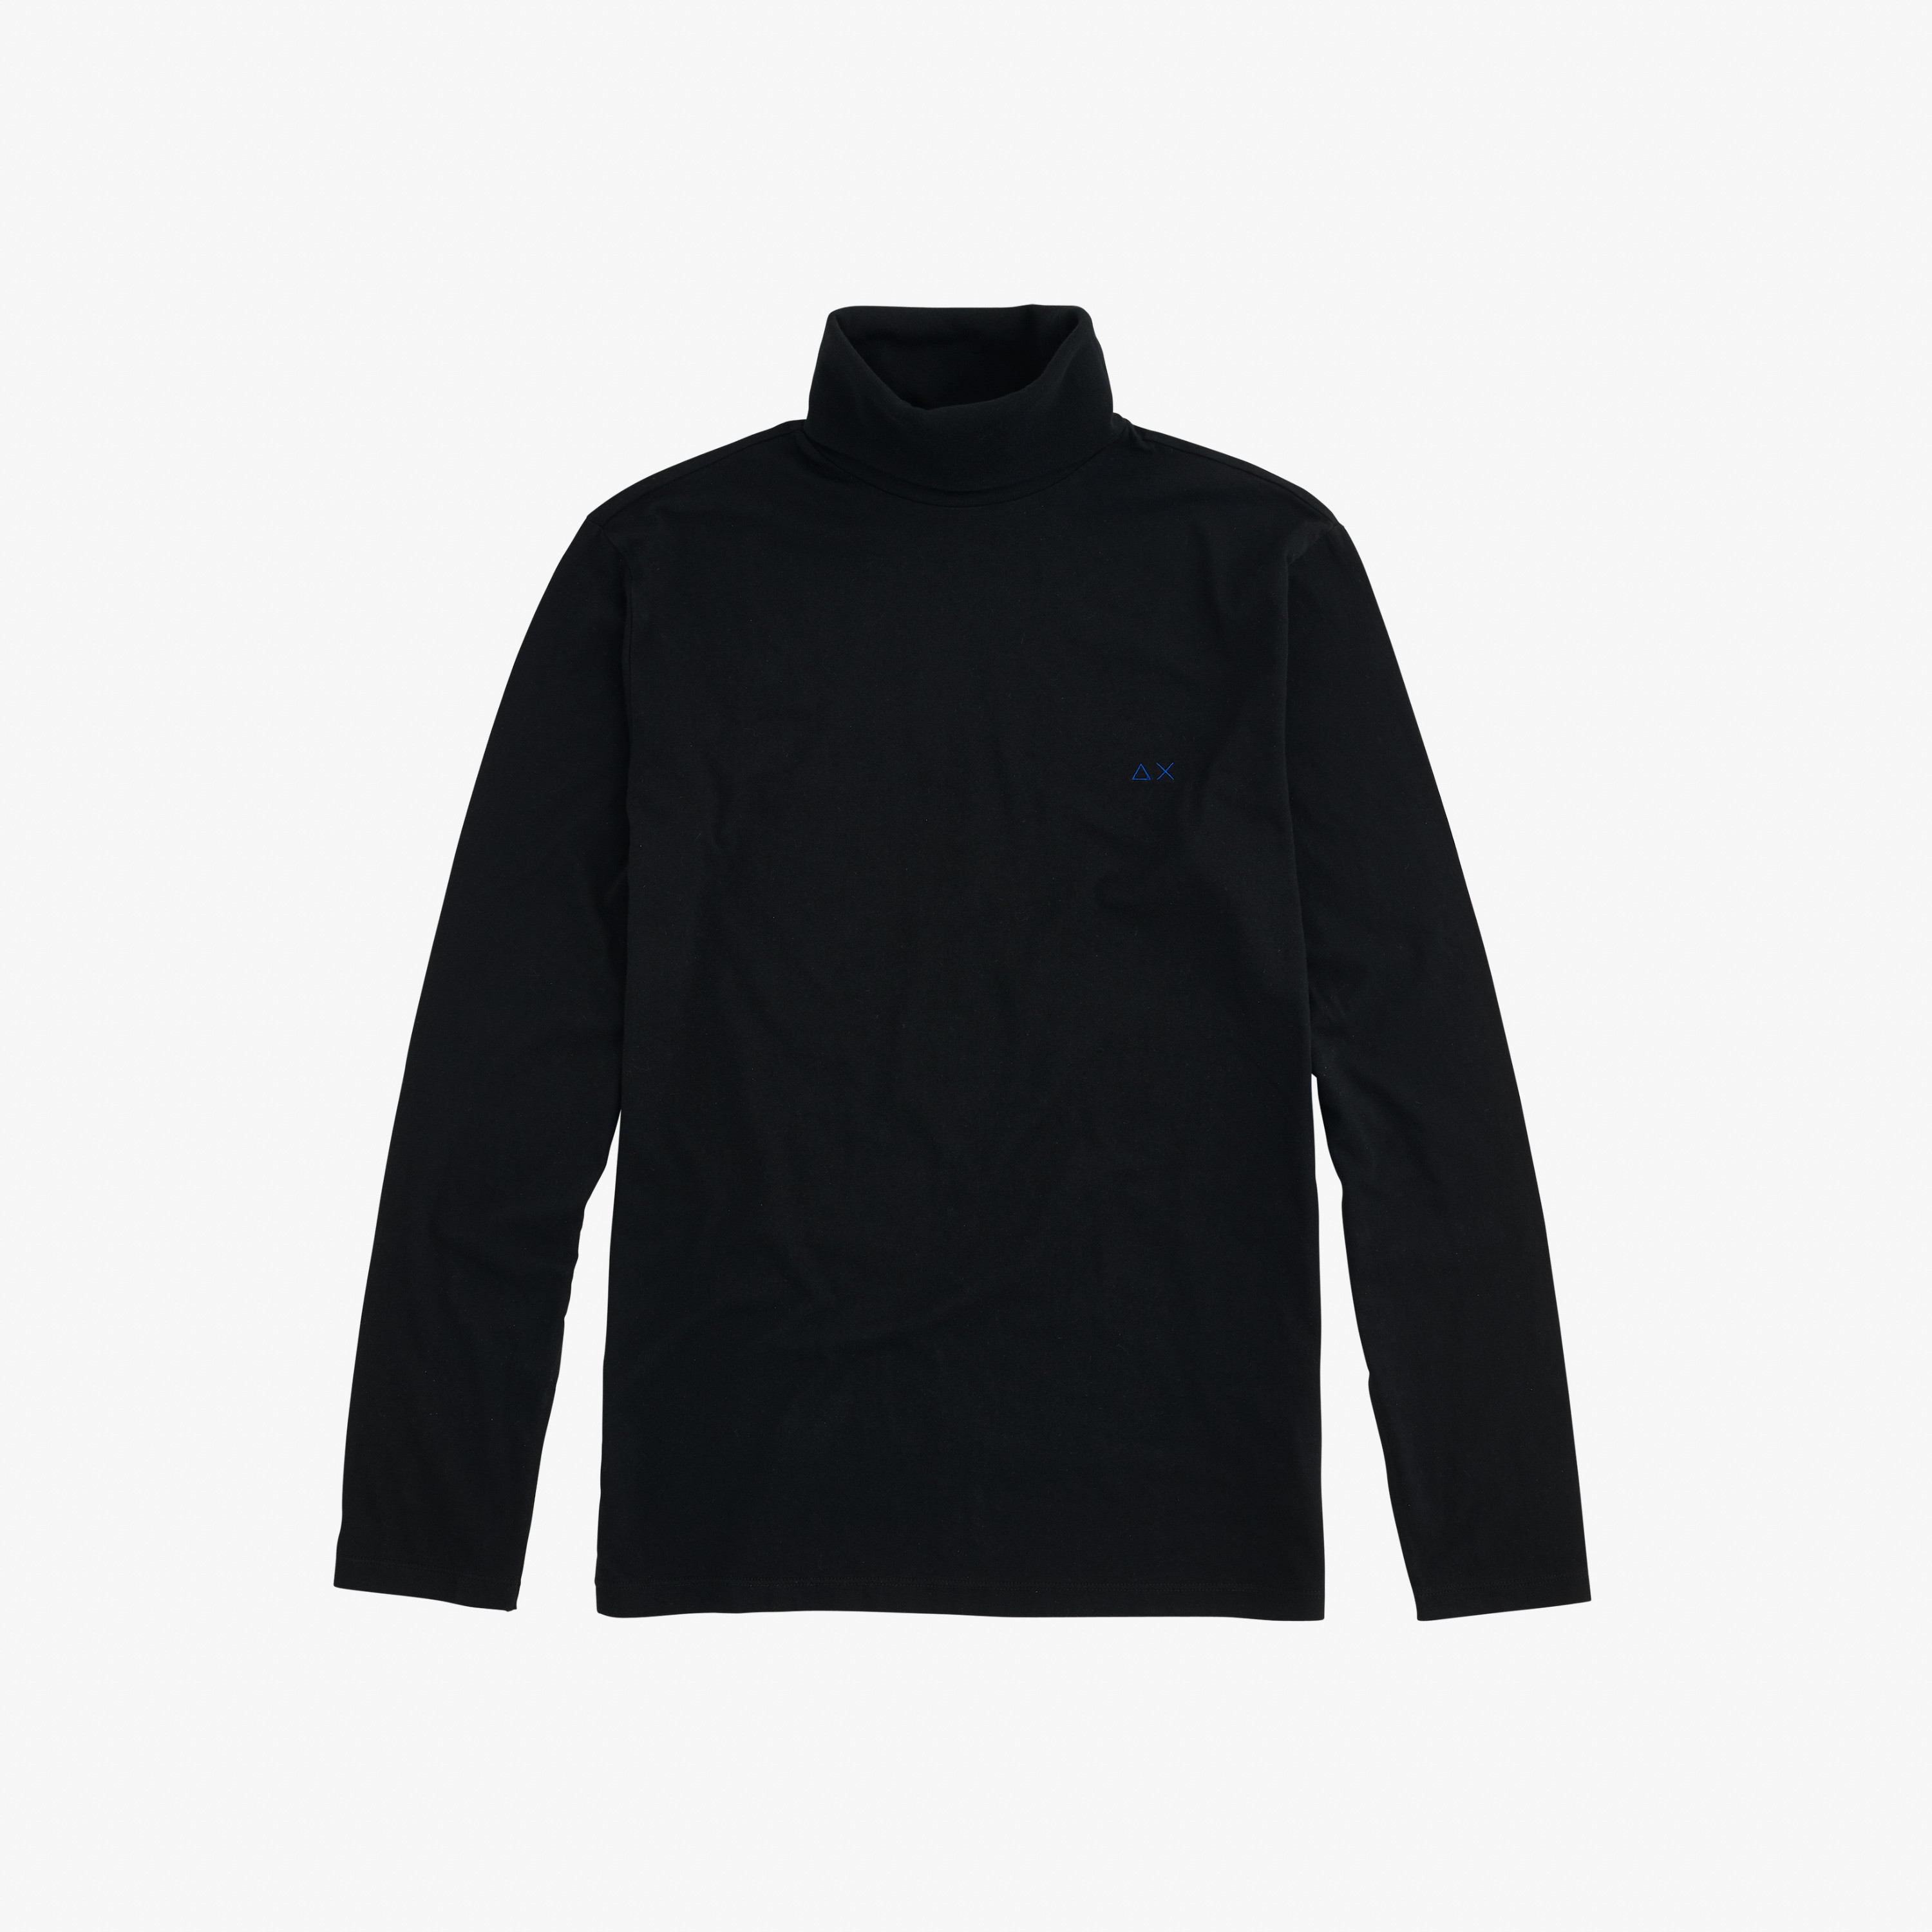 T-SHIRT TURTLE L/S BLACK